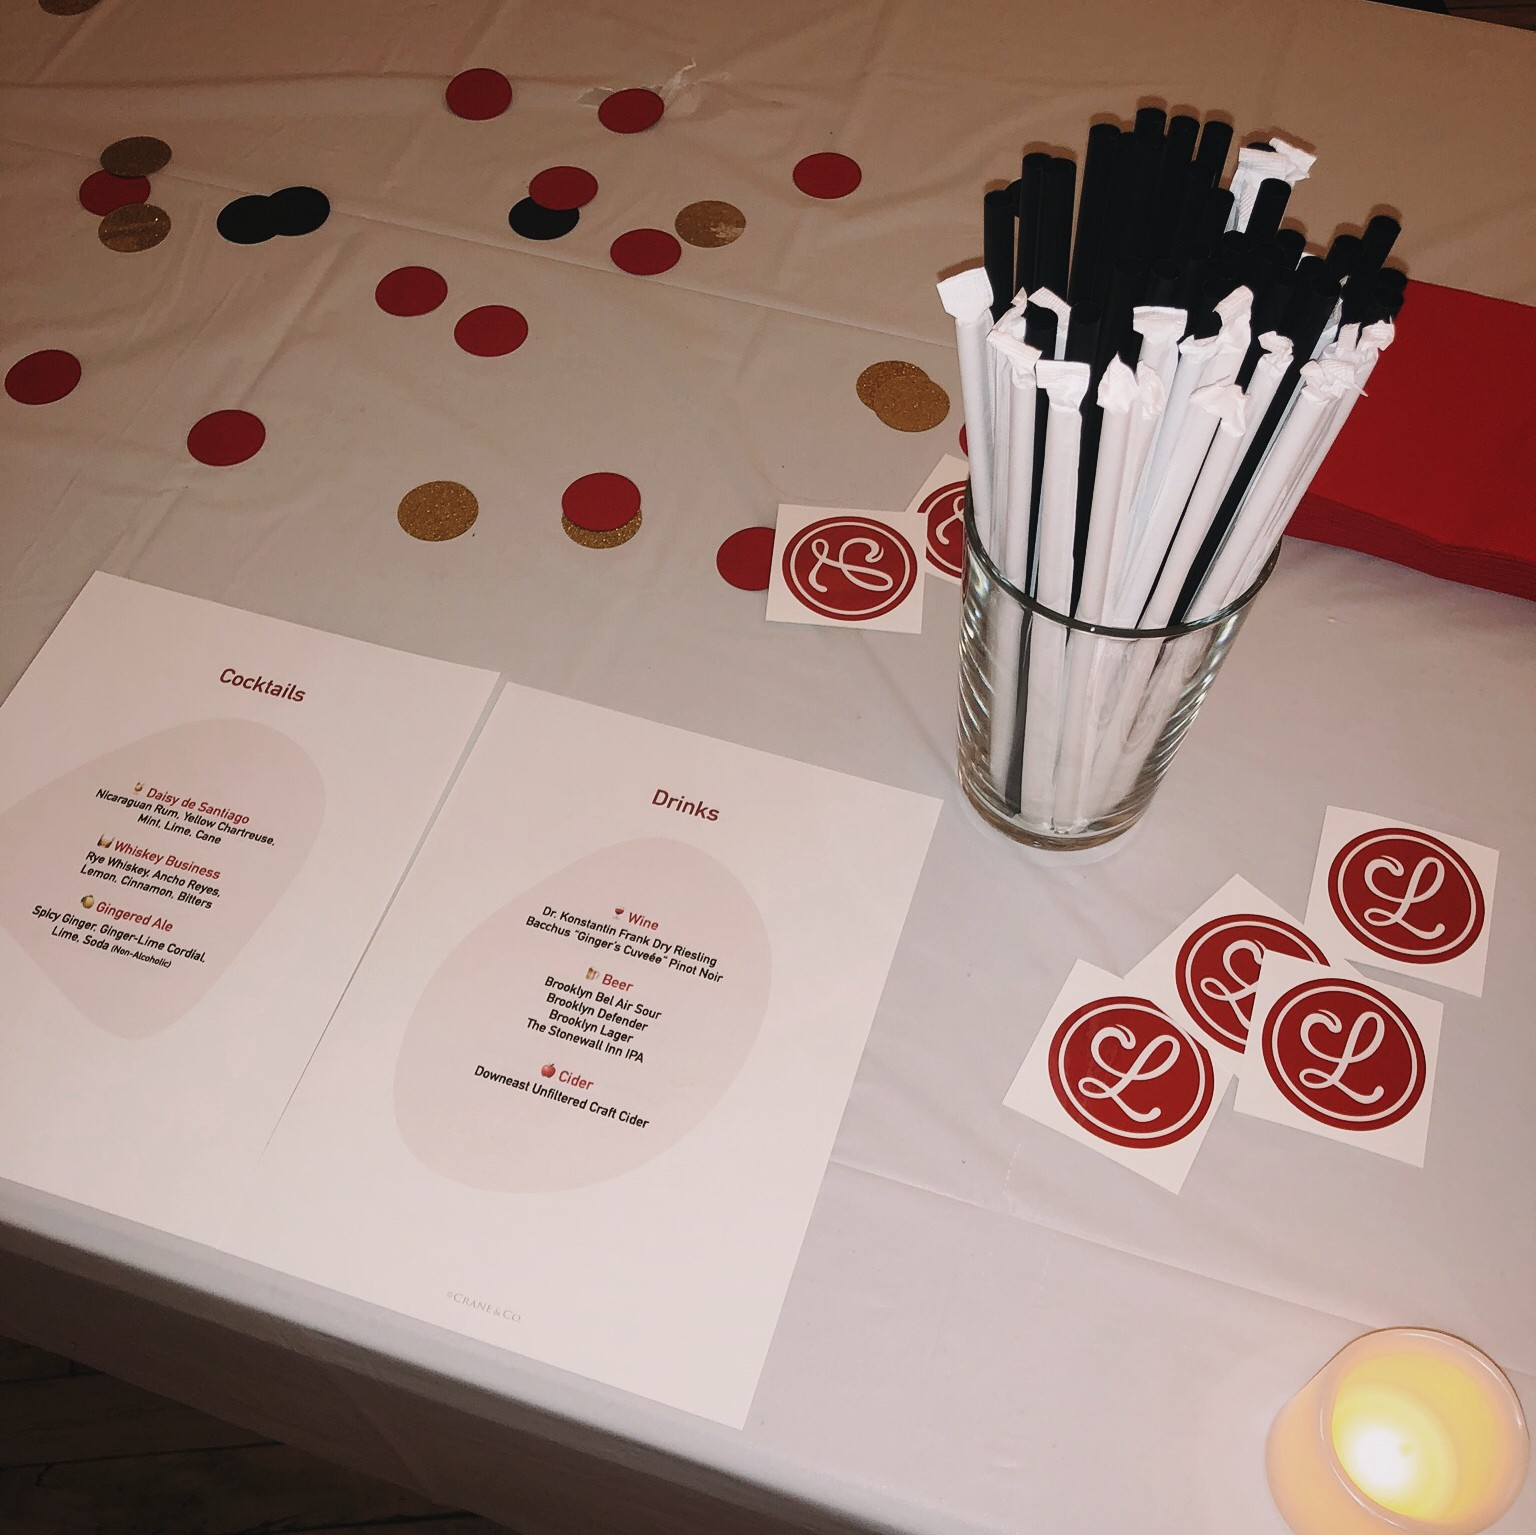 Cocktail menus sitting on a table decorated with stickers and confetti.